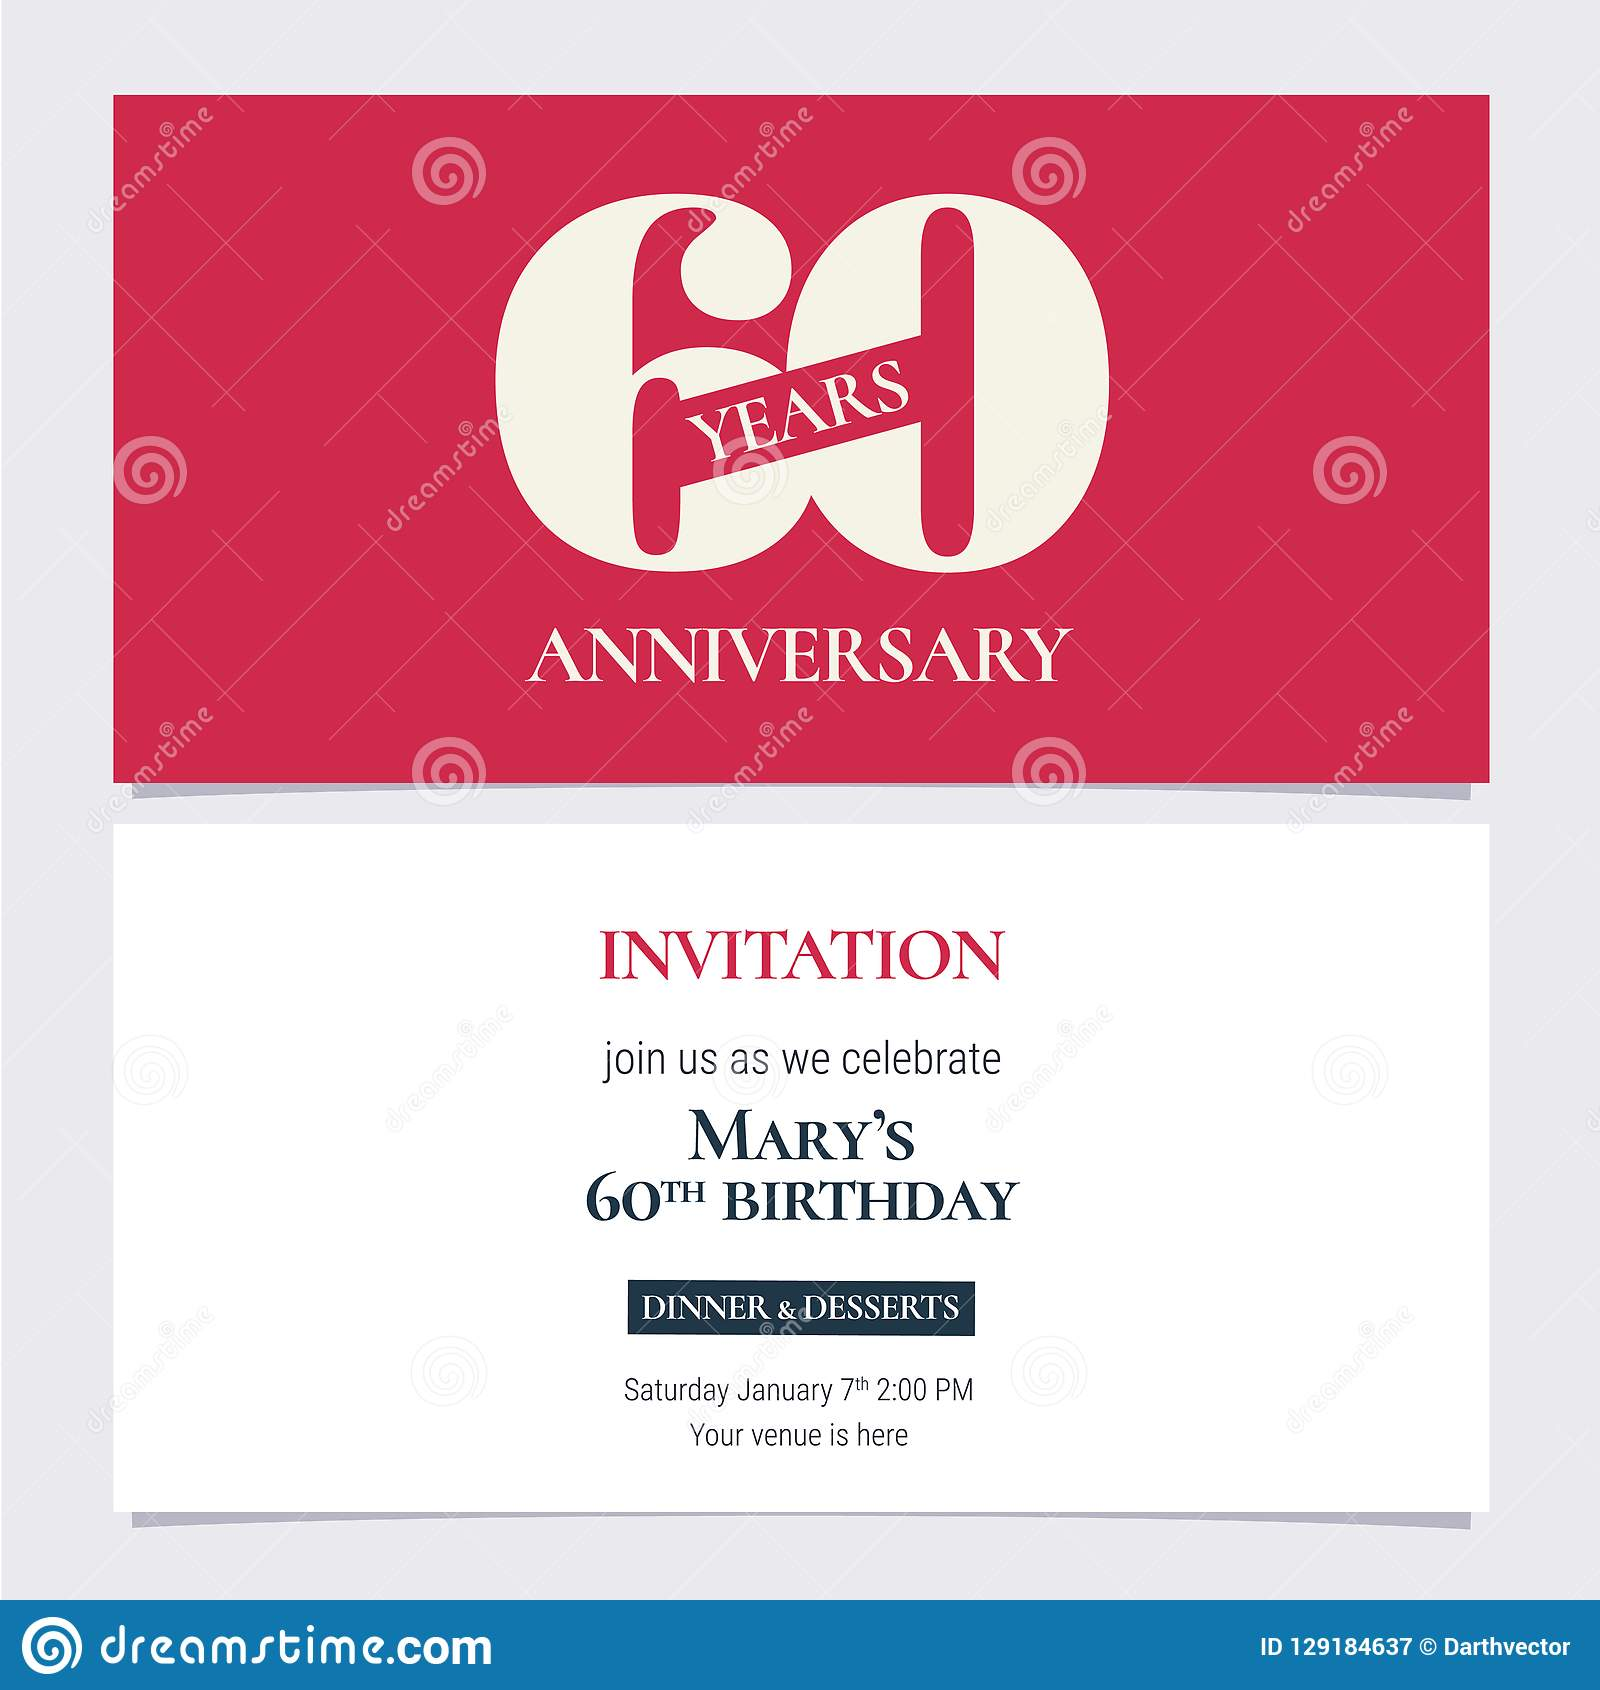 60 Years Anniversary Invitation Vector Illustration Design Template Element With Body Copy For 60th Birthday Card Party Invite